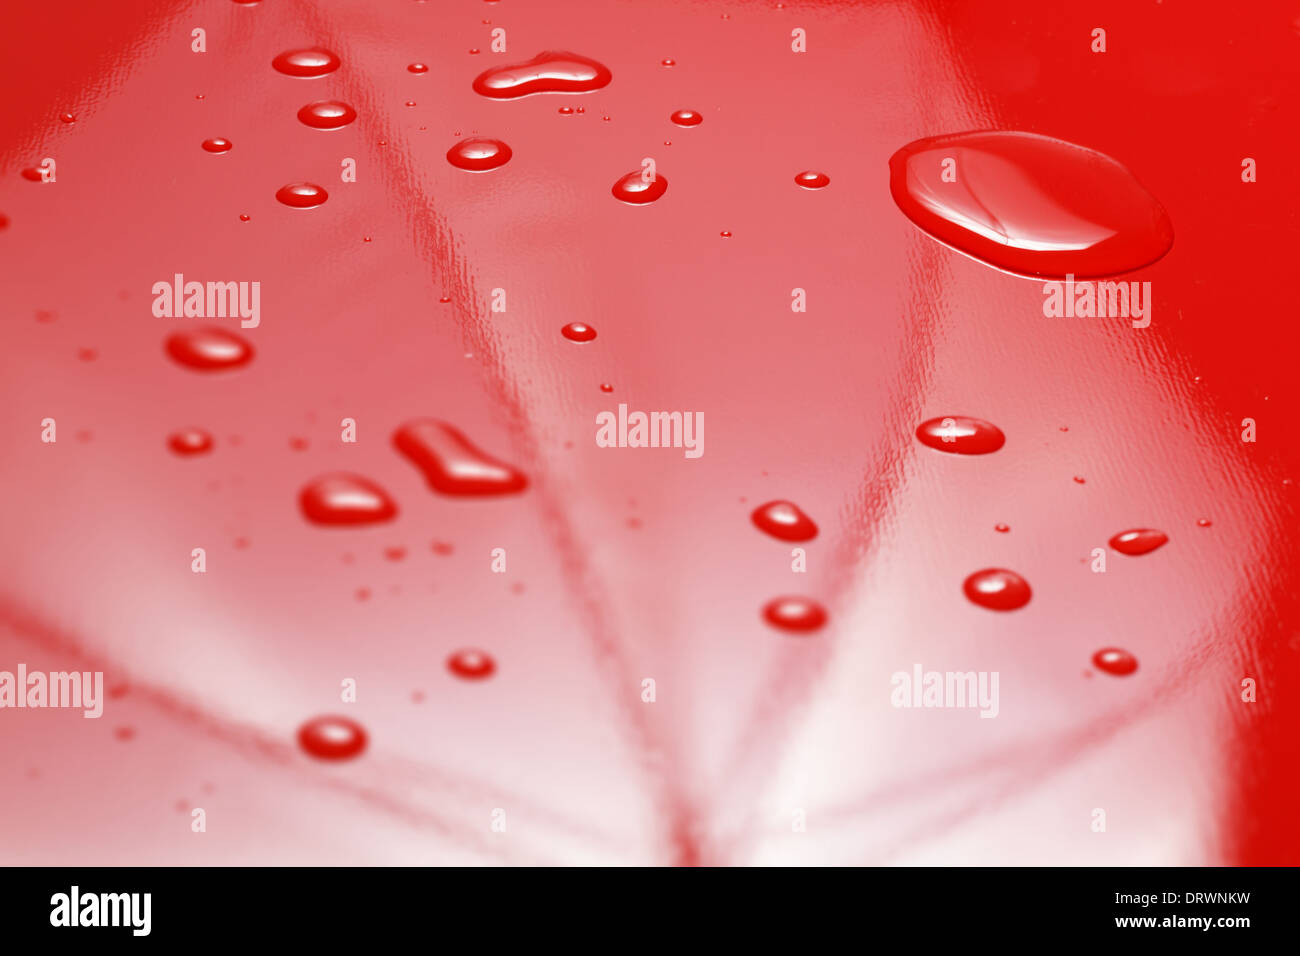 Water droplets on red umbrella. - Stock Image